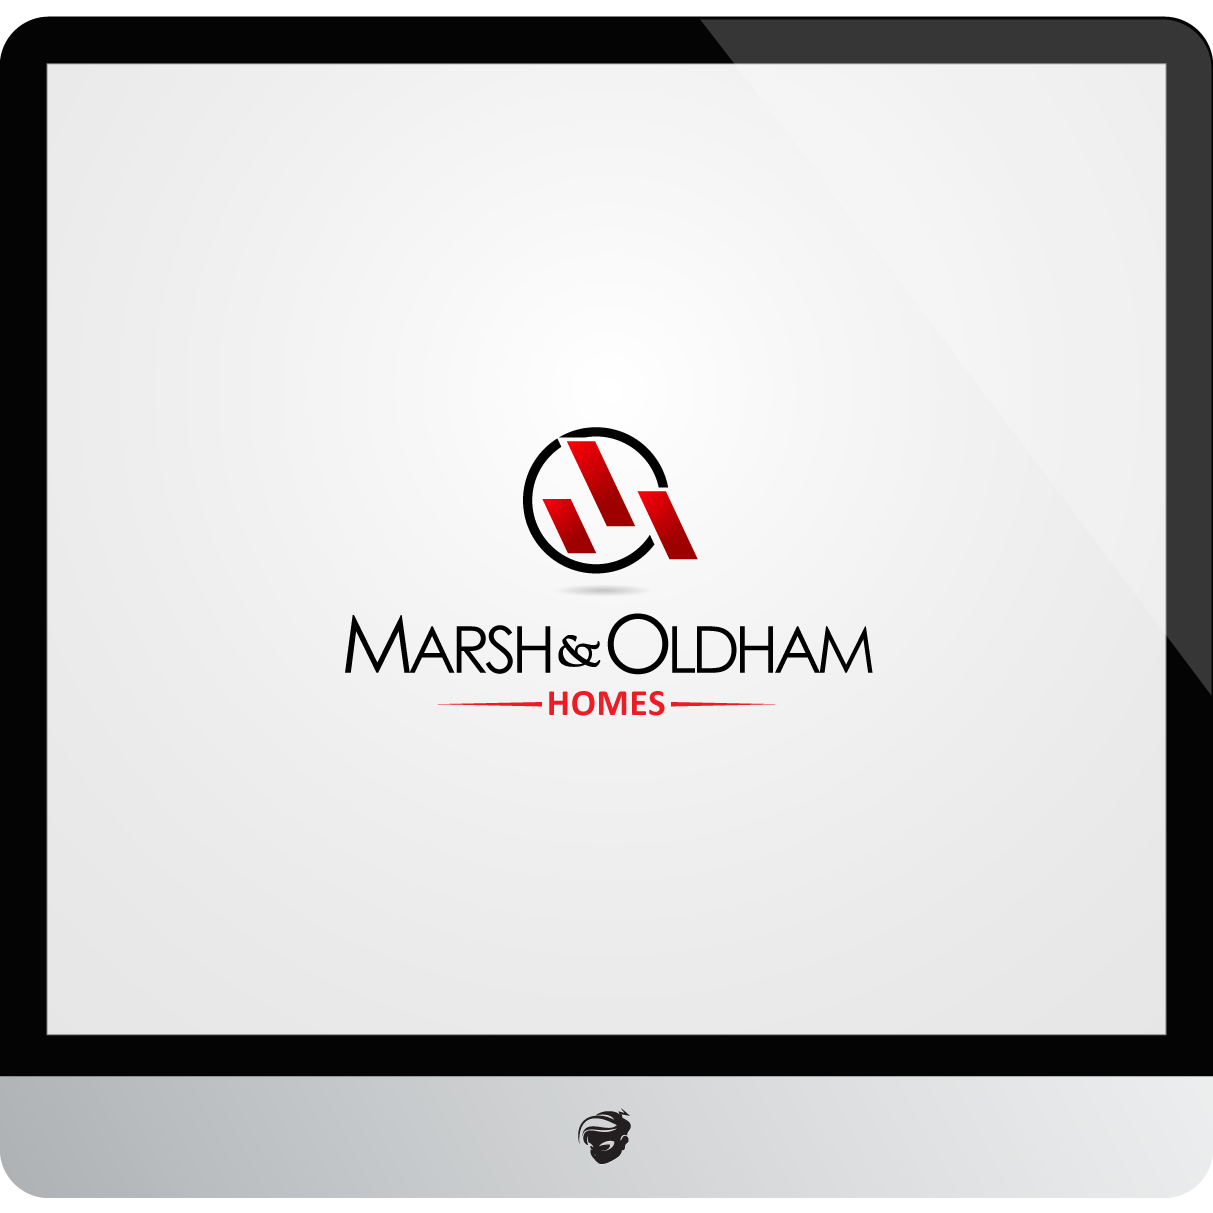 Logo Design by zesthar - Entry No. 143 in the Logo Design Contest Artistic Logo Design for Marsh & Oldham Homes.